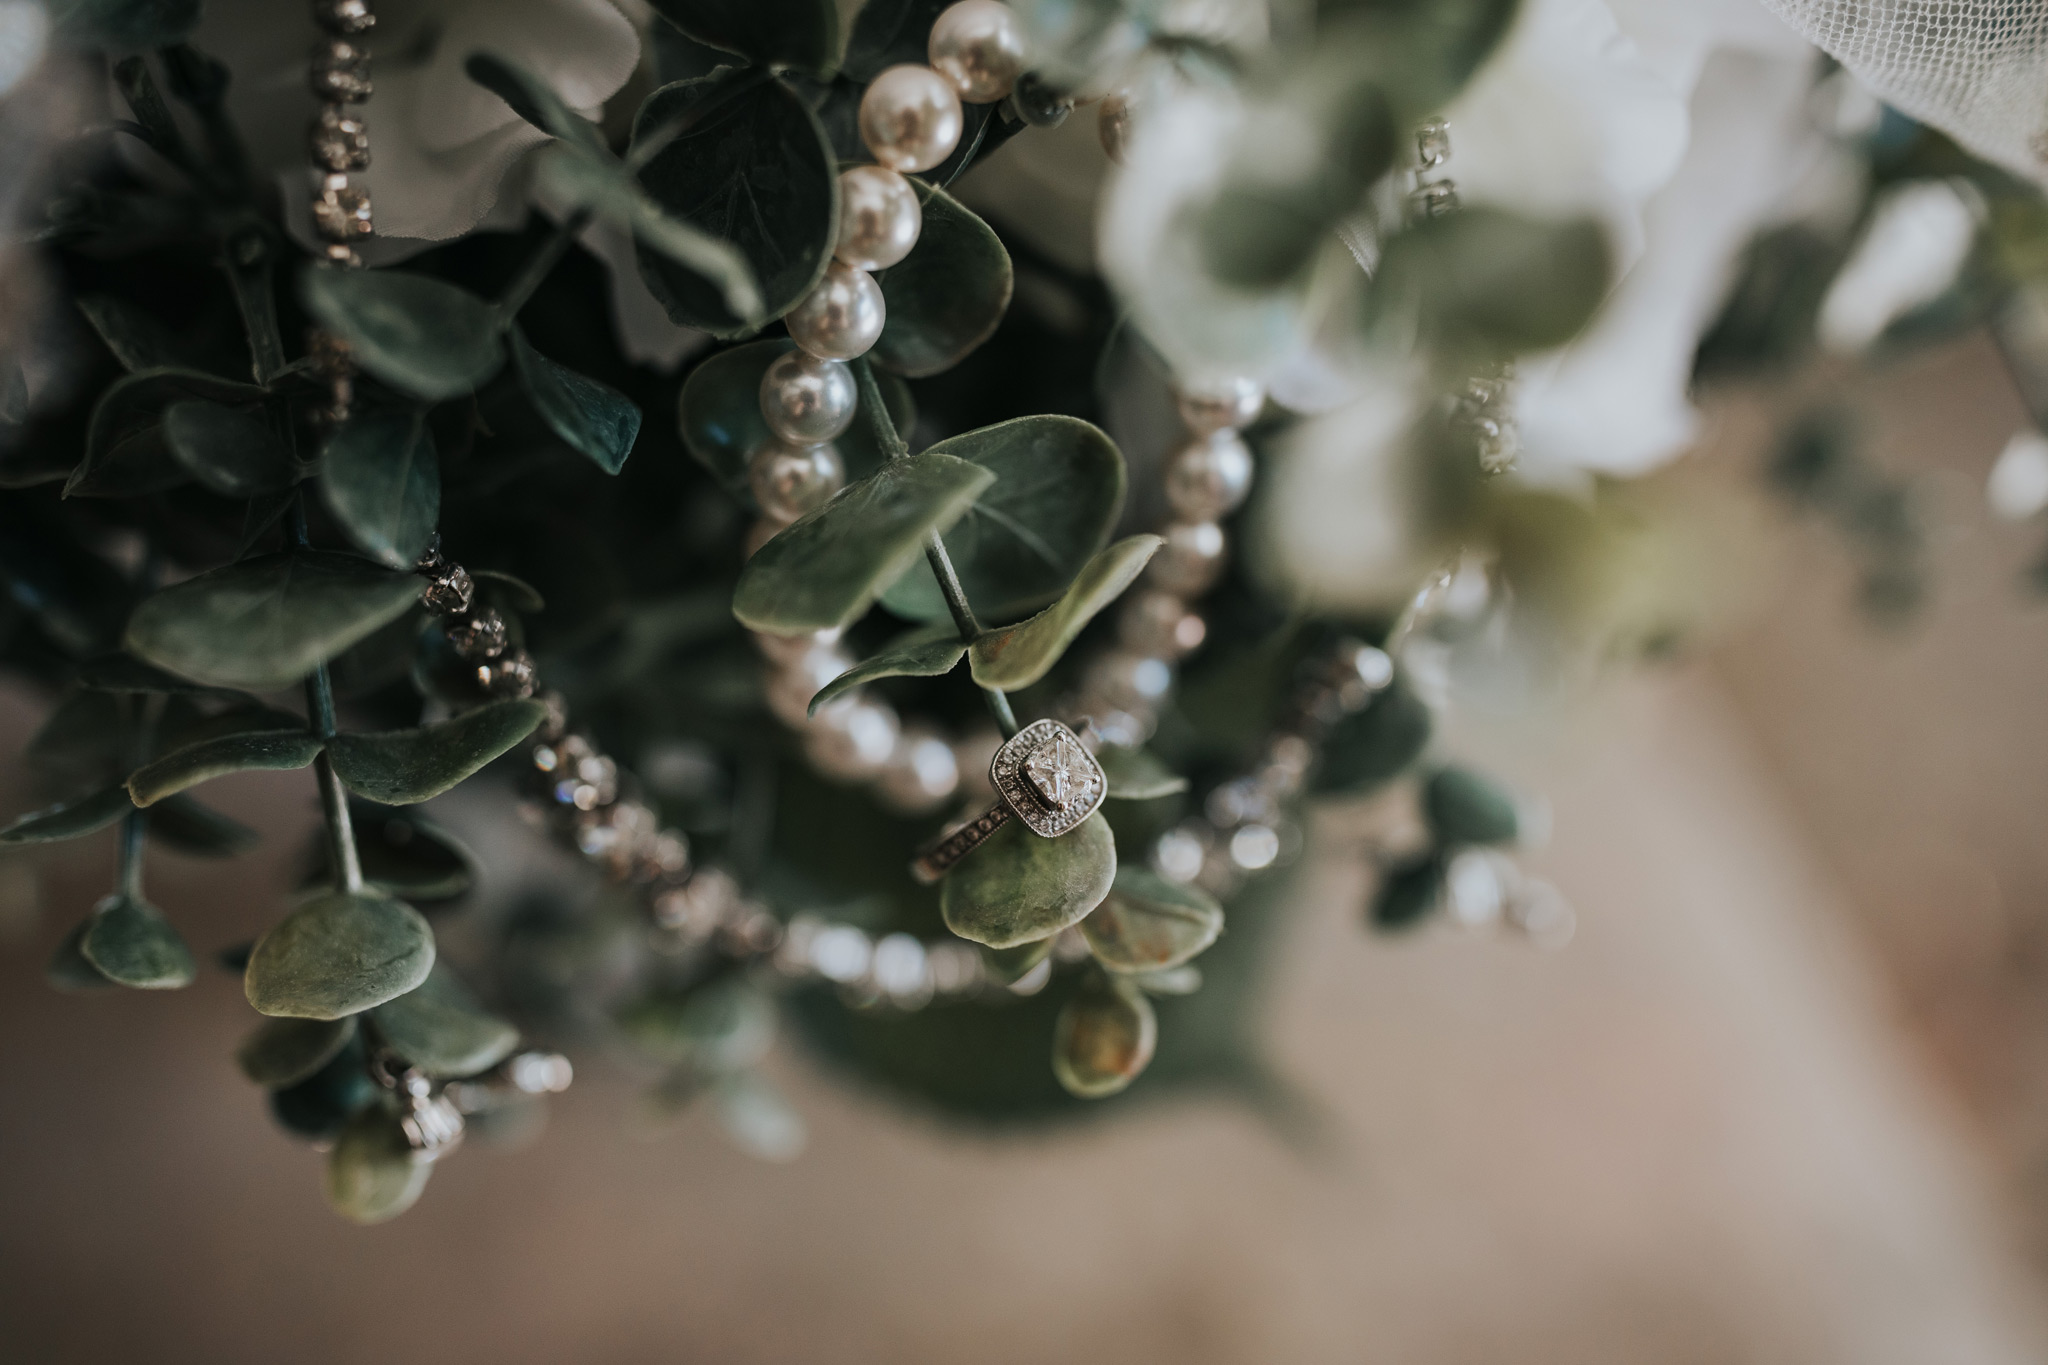 brides jewelry hanging in wedding bouquet greenery